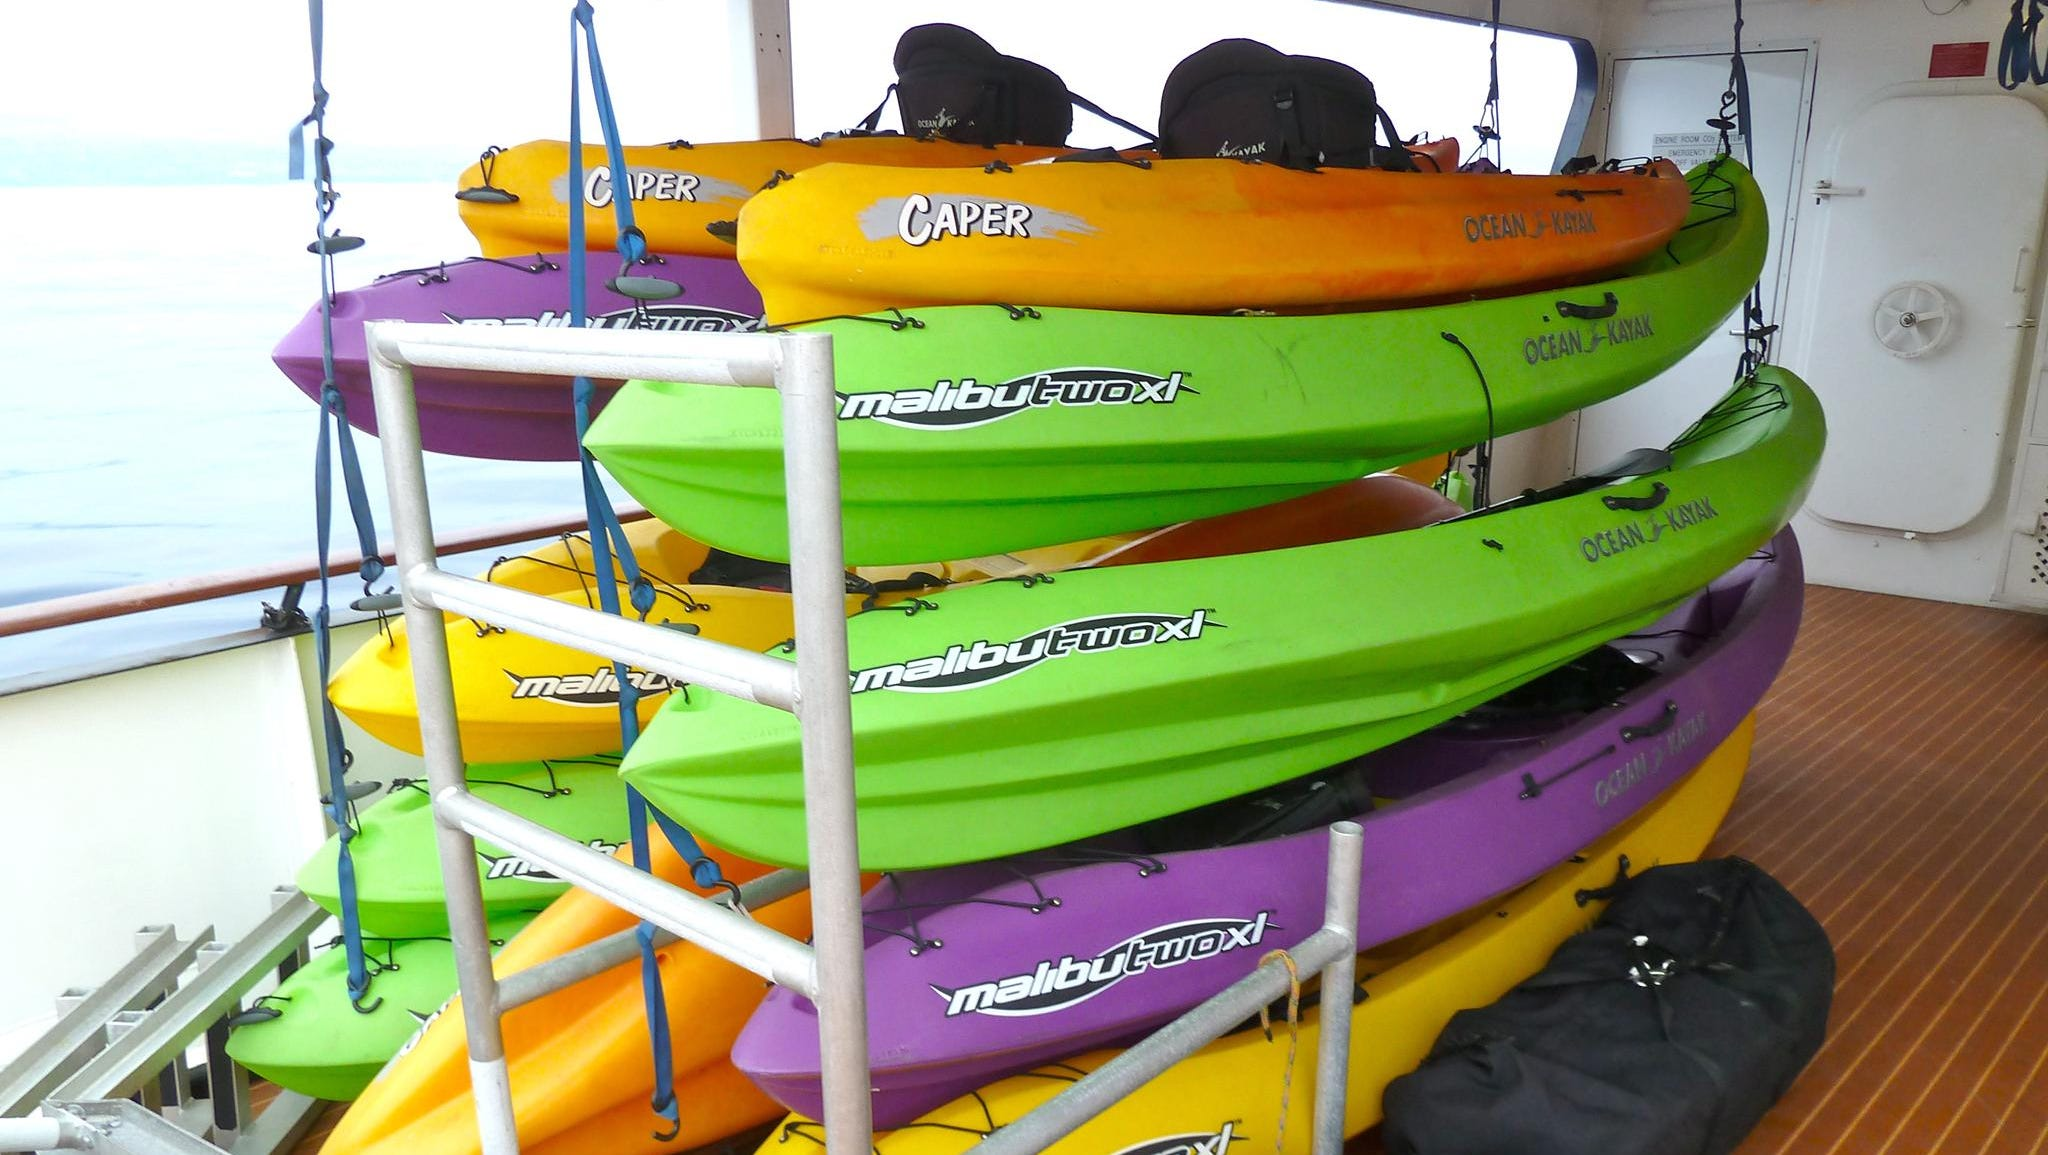 The Safari Explorer has a veritable fleet of sea kayaks for guests' use.